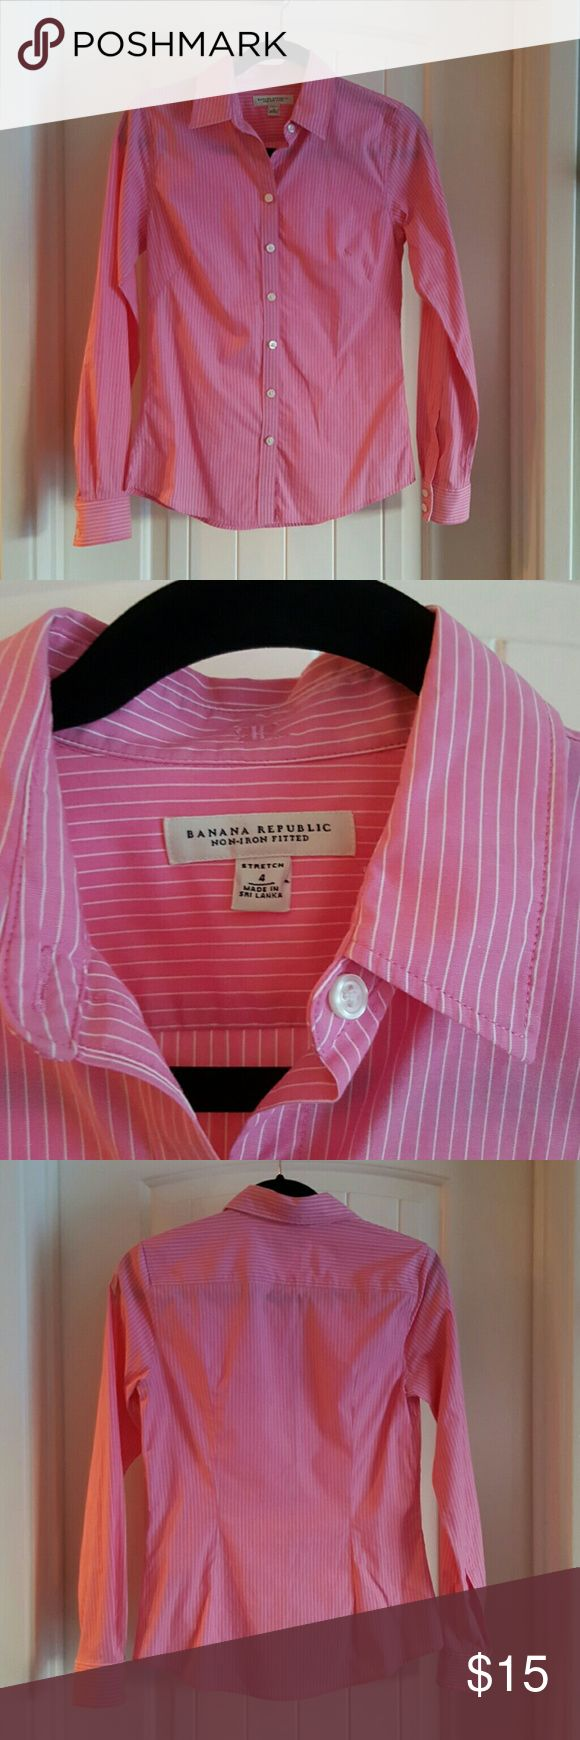 """Banana Republic, Non Iron Fitted Button Down, 4 Pink with White Pinstripes; 17"""" Bust; Overall length from back of collar to bottom hem is 26""""; 97% Cotton 3% Lycra Spandex. Banana Republic Tops Button Down Shirts"""